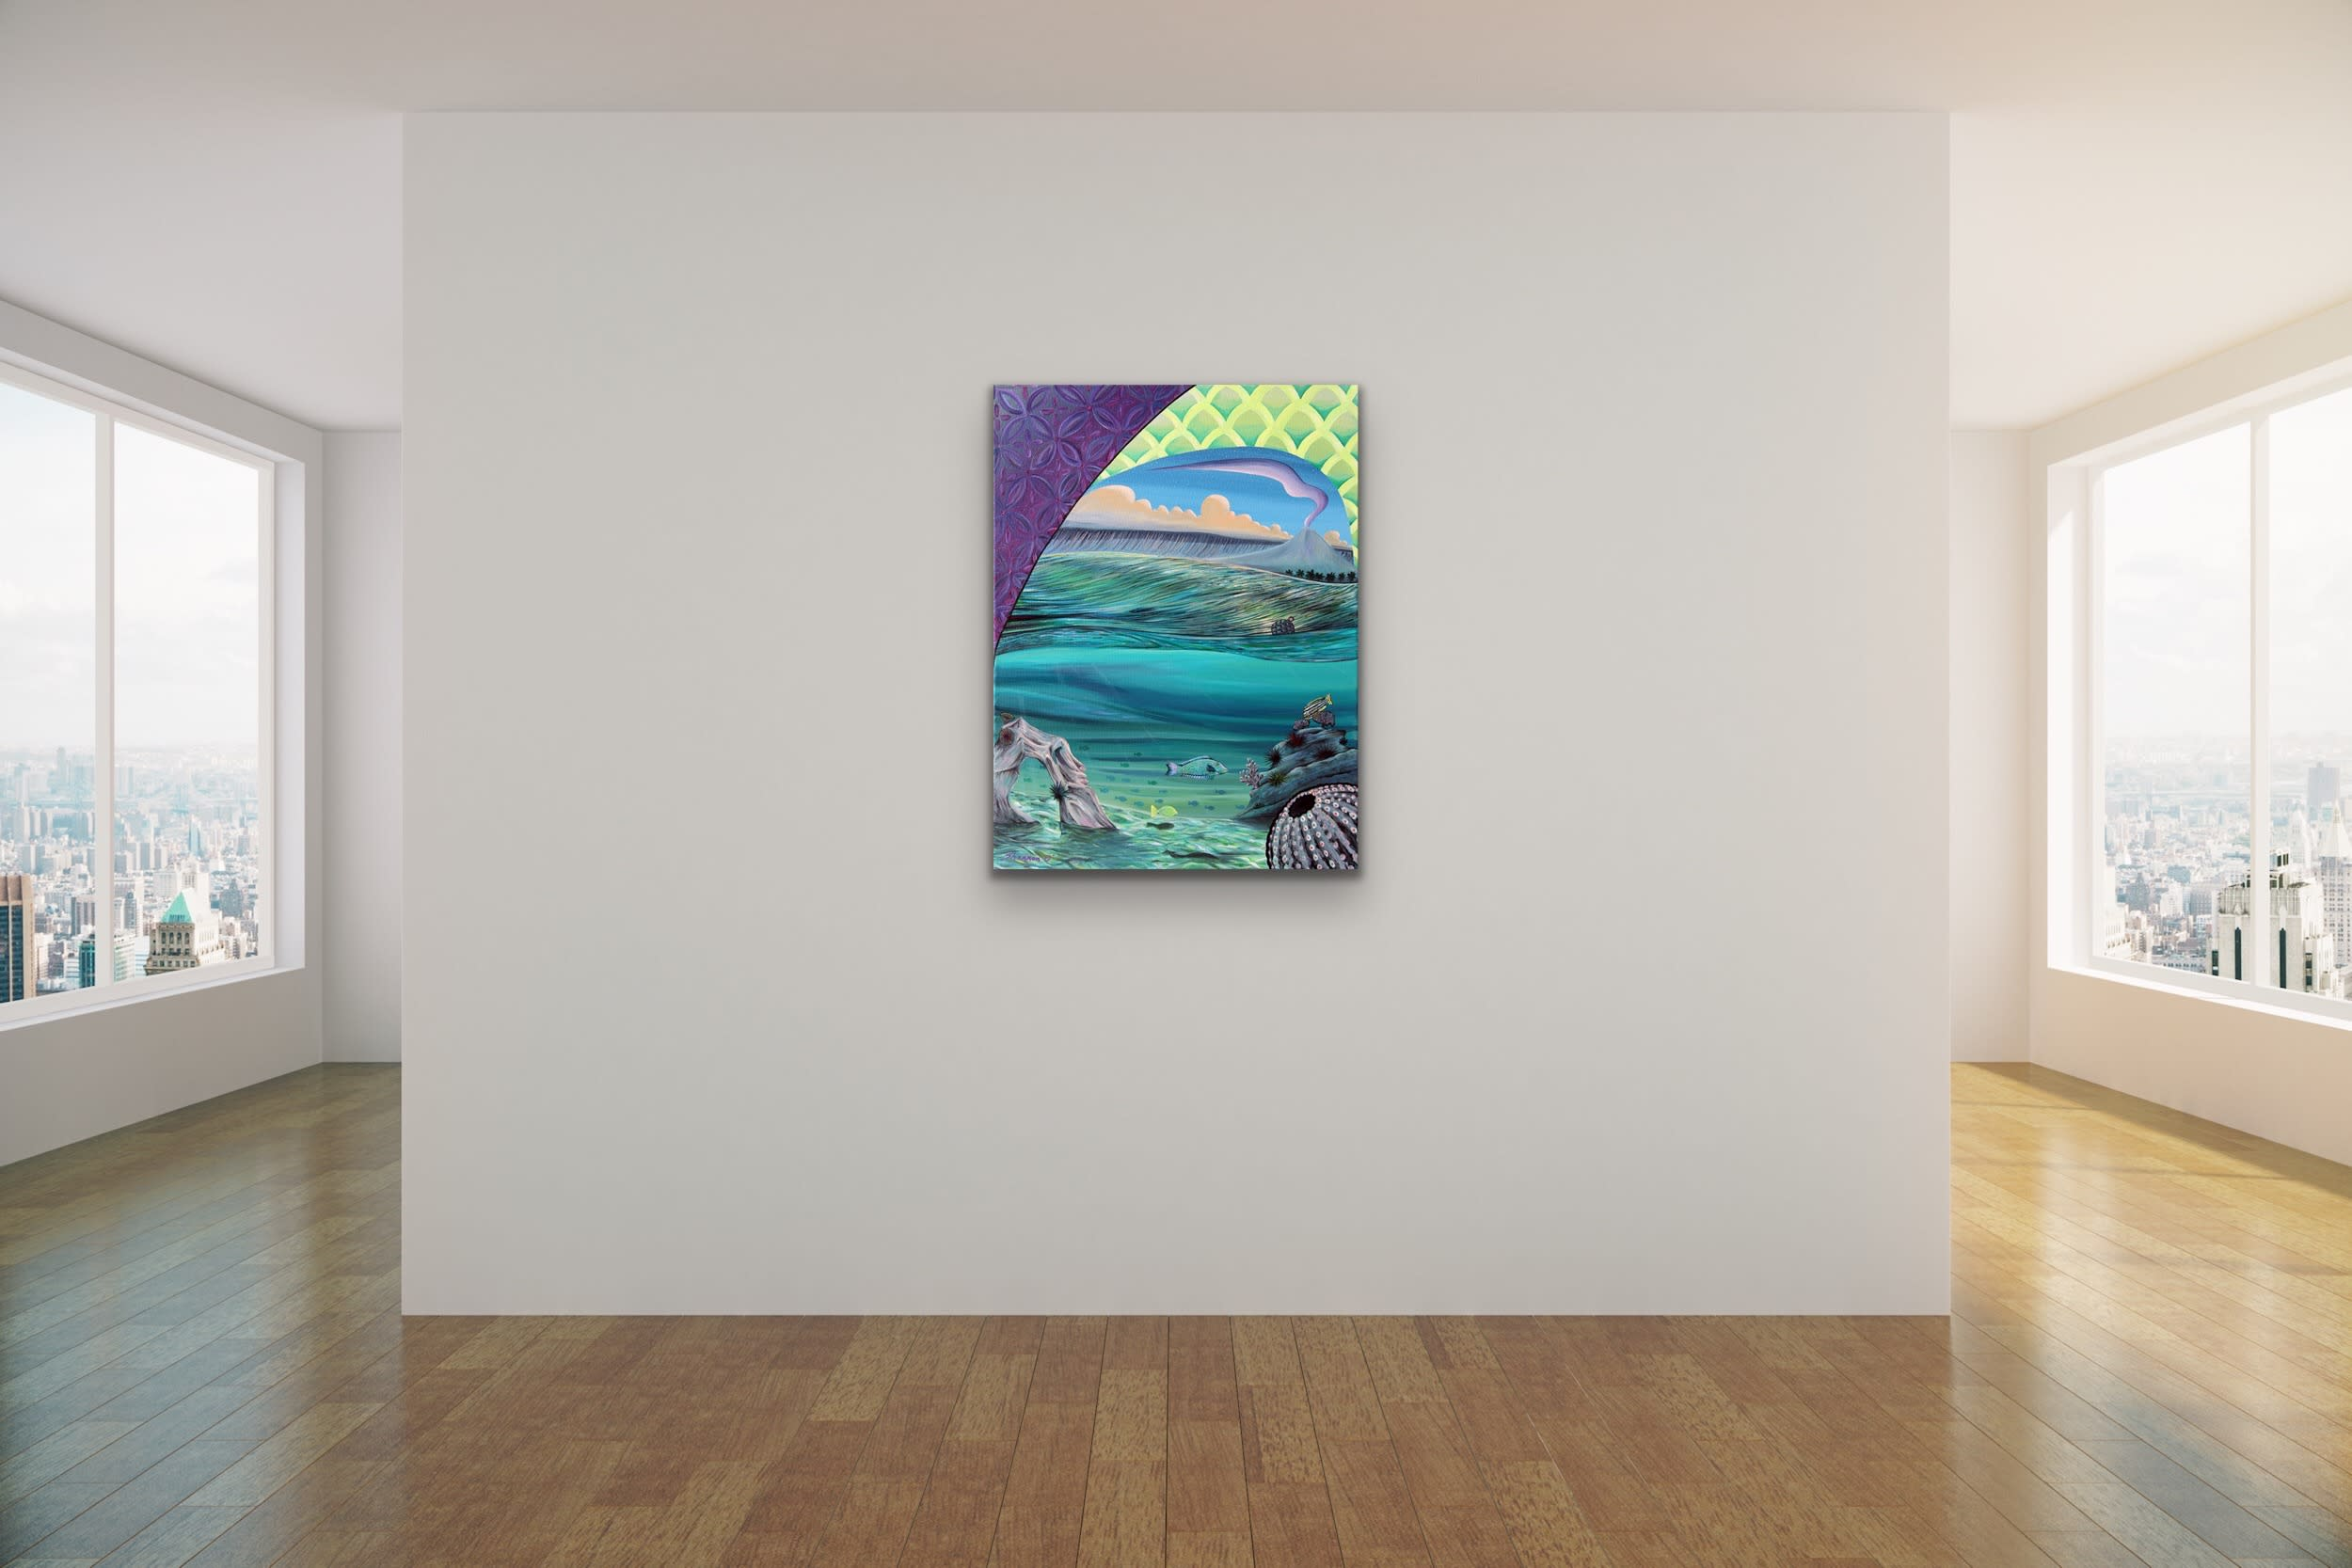 <div class='title'>           Shannon Oconnell Paintings Mock Ups Evo Art Maui Lahain Front Street Gallery Collect Popular Colorful Ocean Flowers Scenery Waves 13         </div>